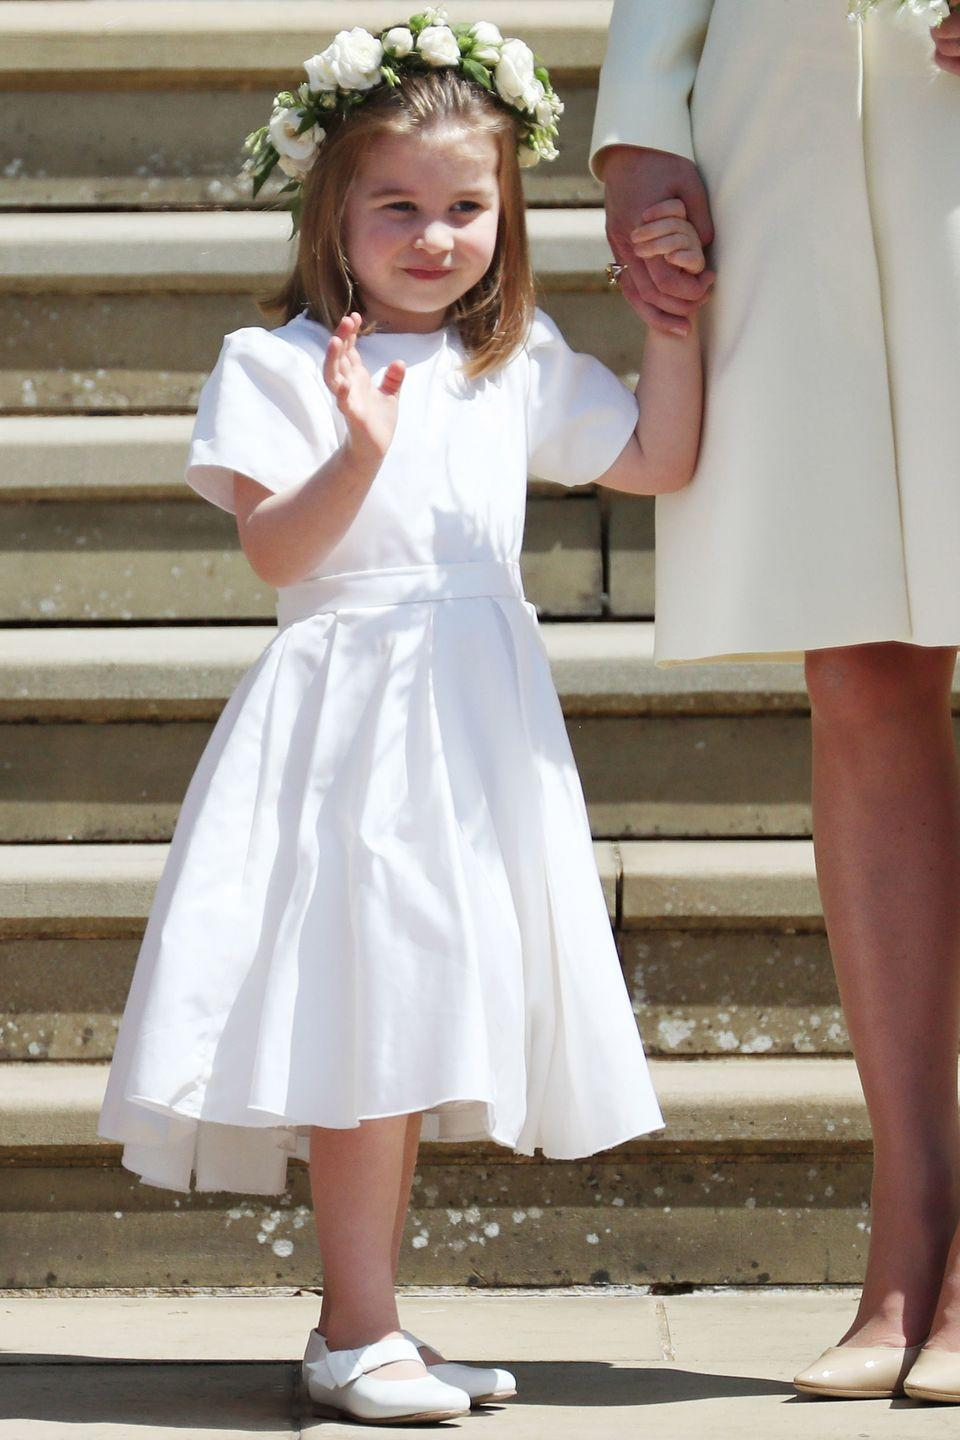 <p>Princess Charlotte makes an appearance in Prince Harry and Meghan Markle's royal wedding party, wearing a white dress and matching floral crown. </p>